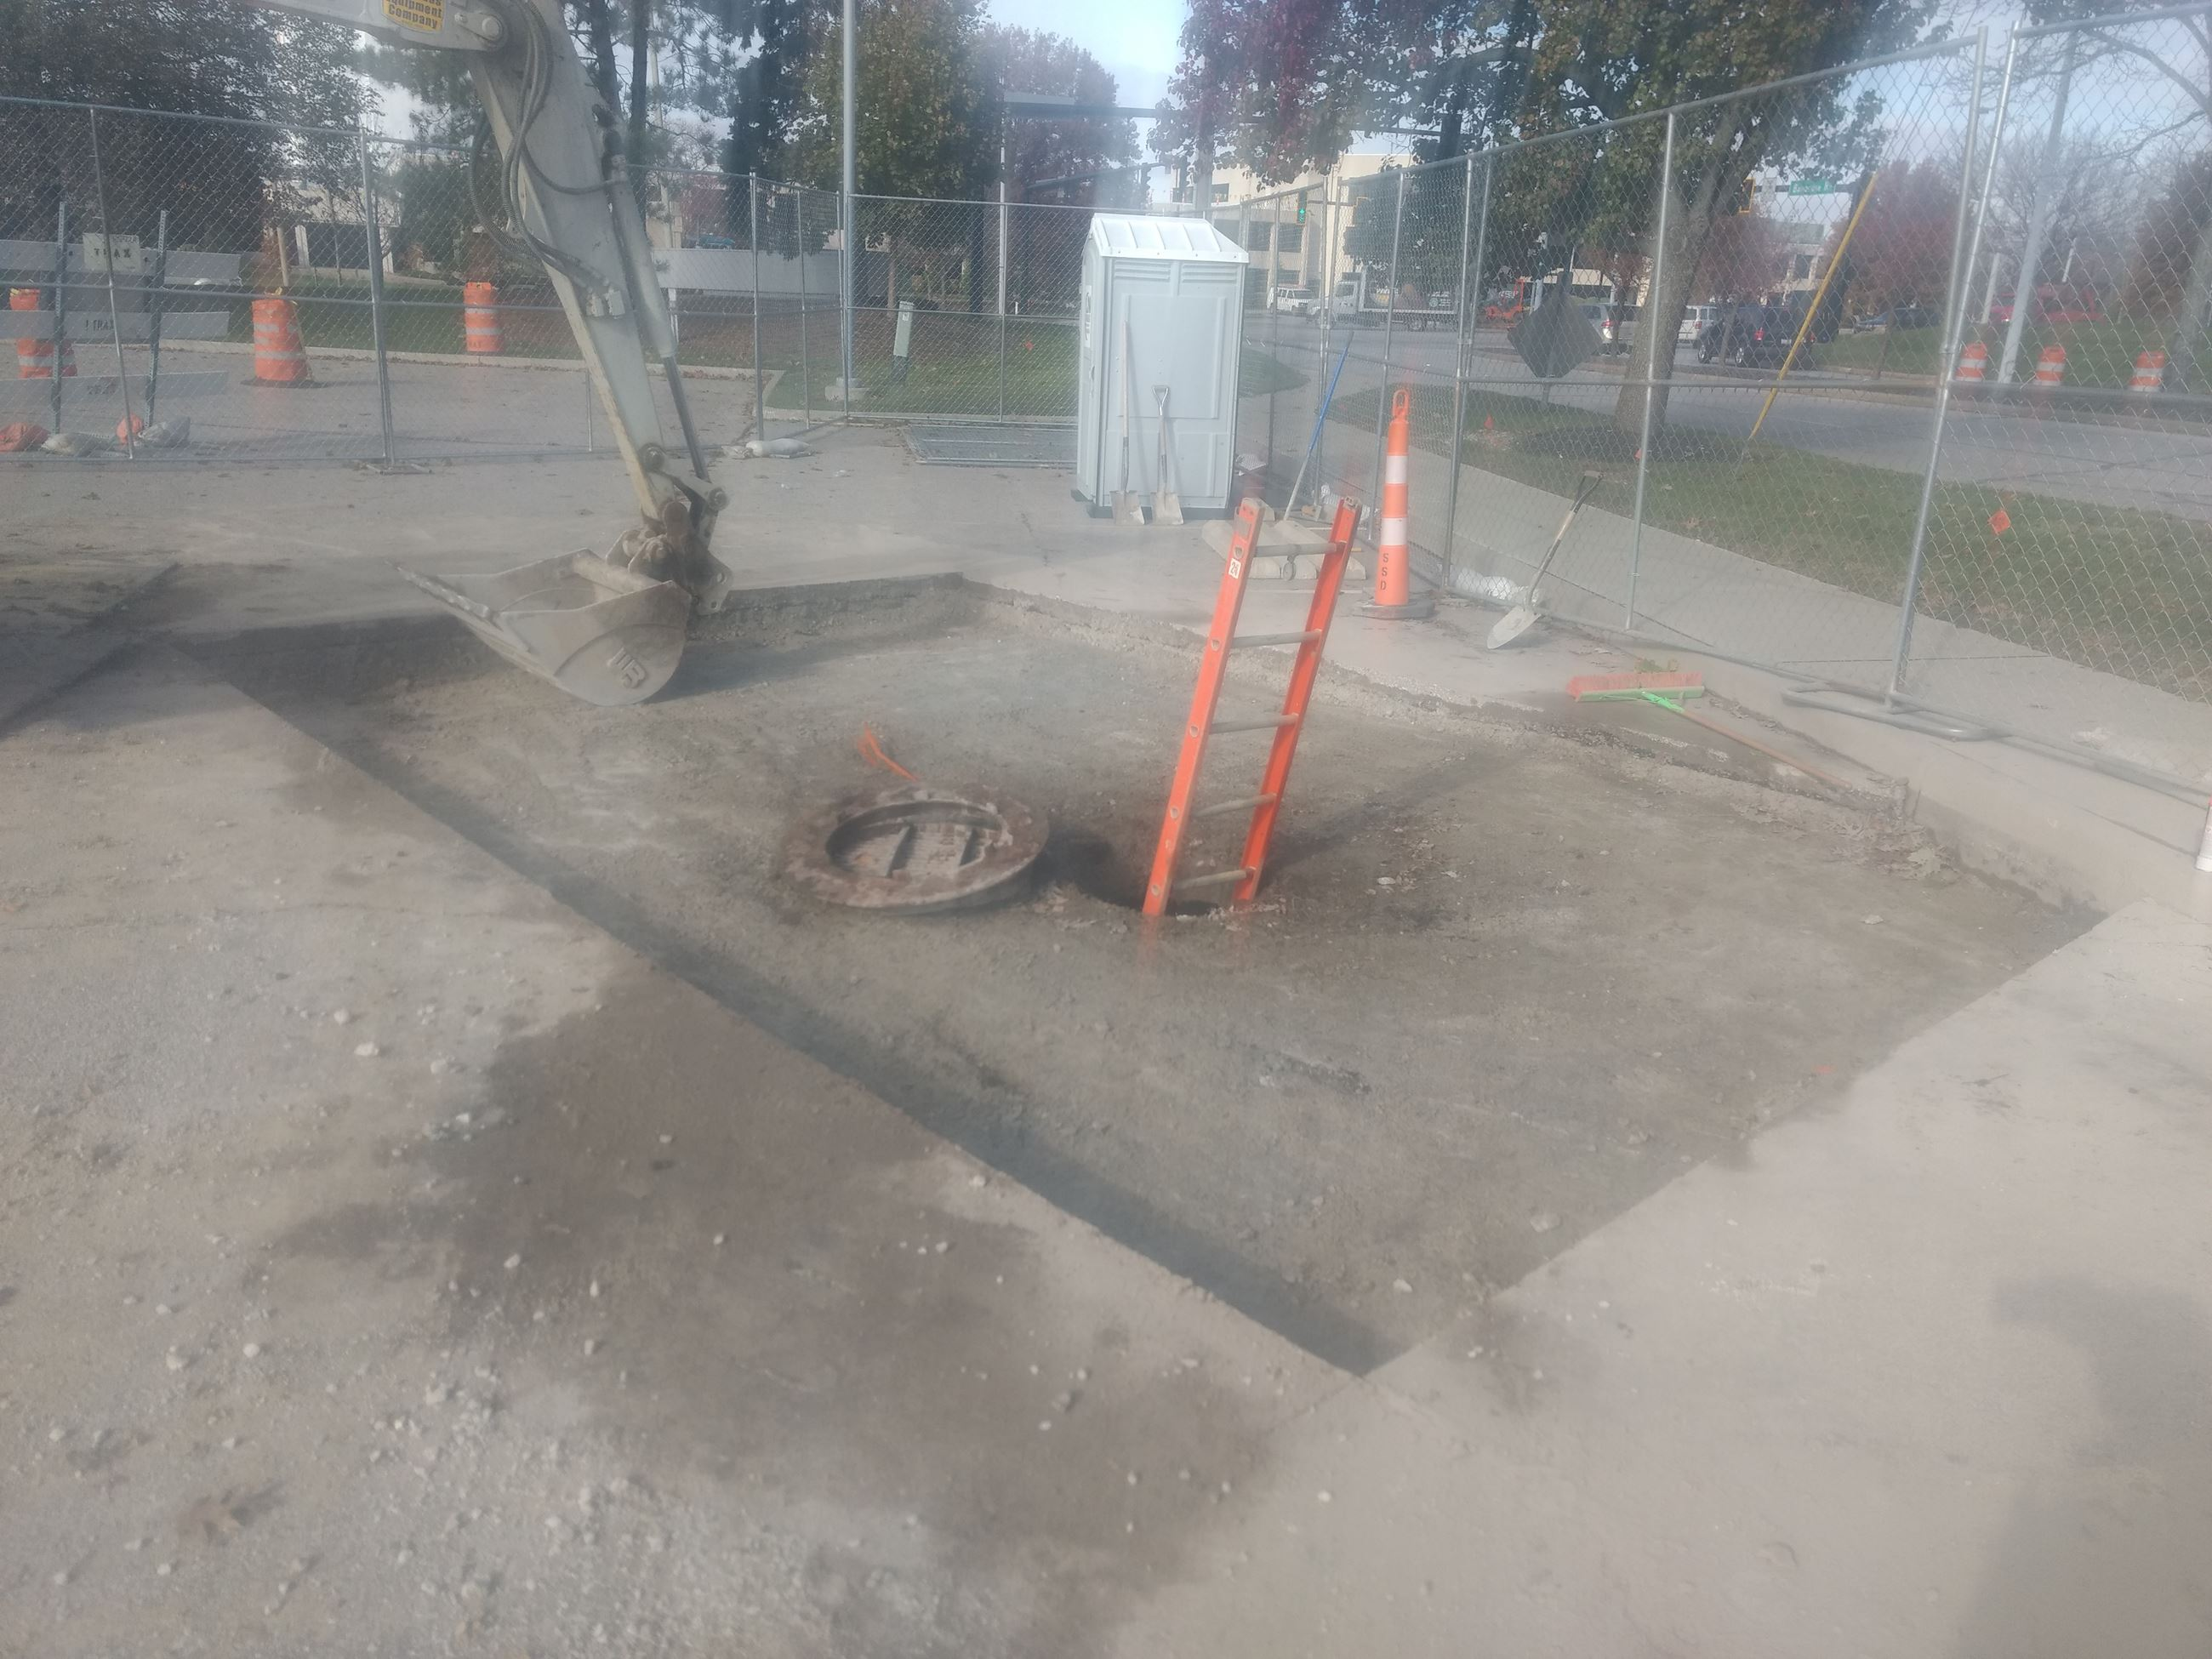 Bainbridge Culvert Access area - asphalt removed